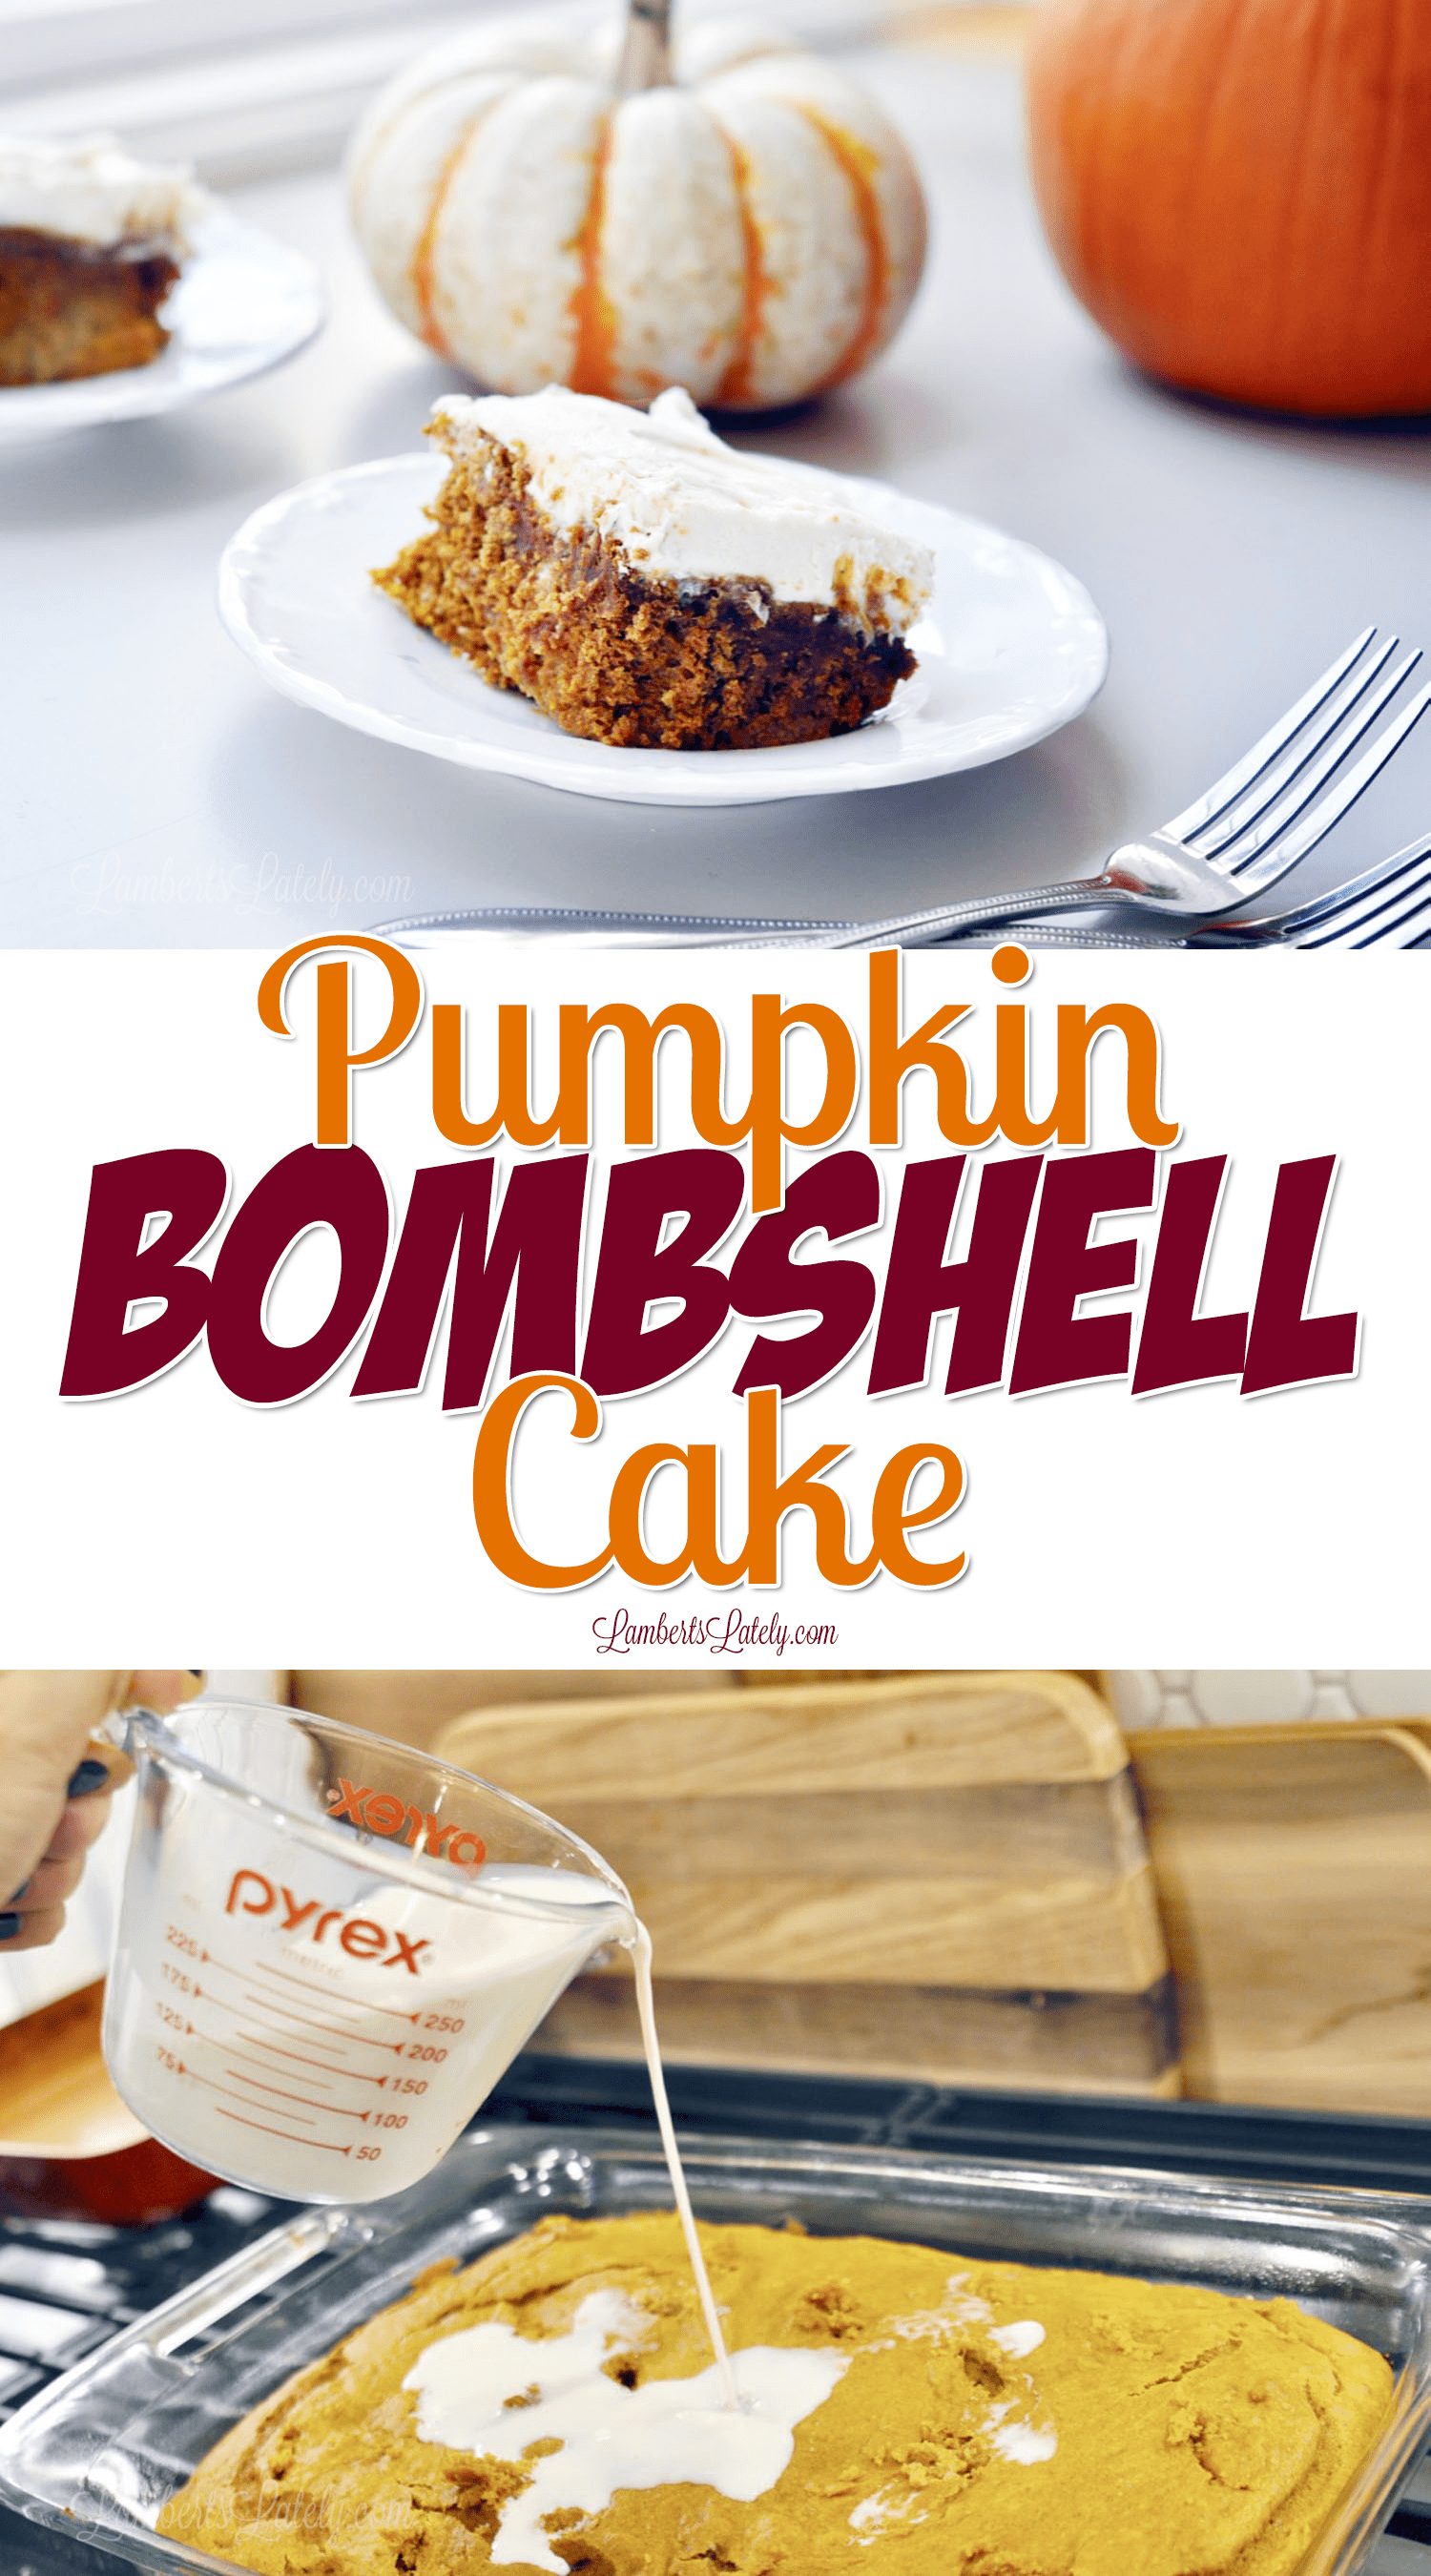 This easy Pumpkin Bombshell Cake with cream cheese frosting is one of the most simple recipes you're going to find for a fall dessert! Great way to make such a moist, rich cake from a box mix that's spiced up.